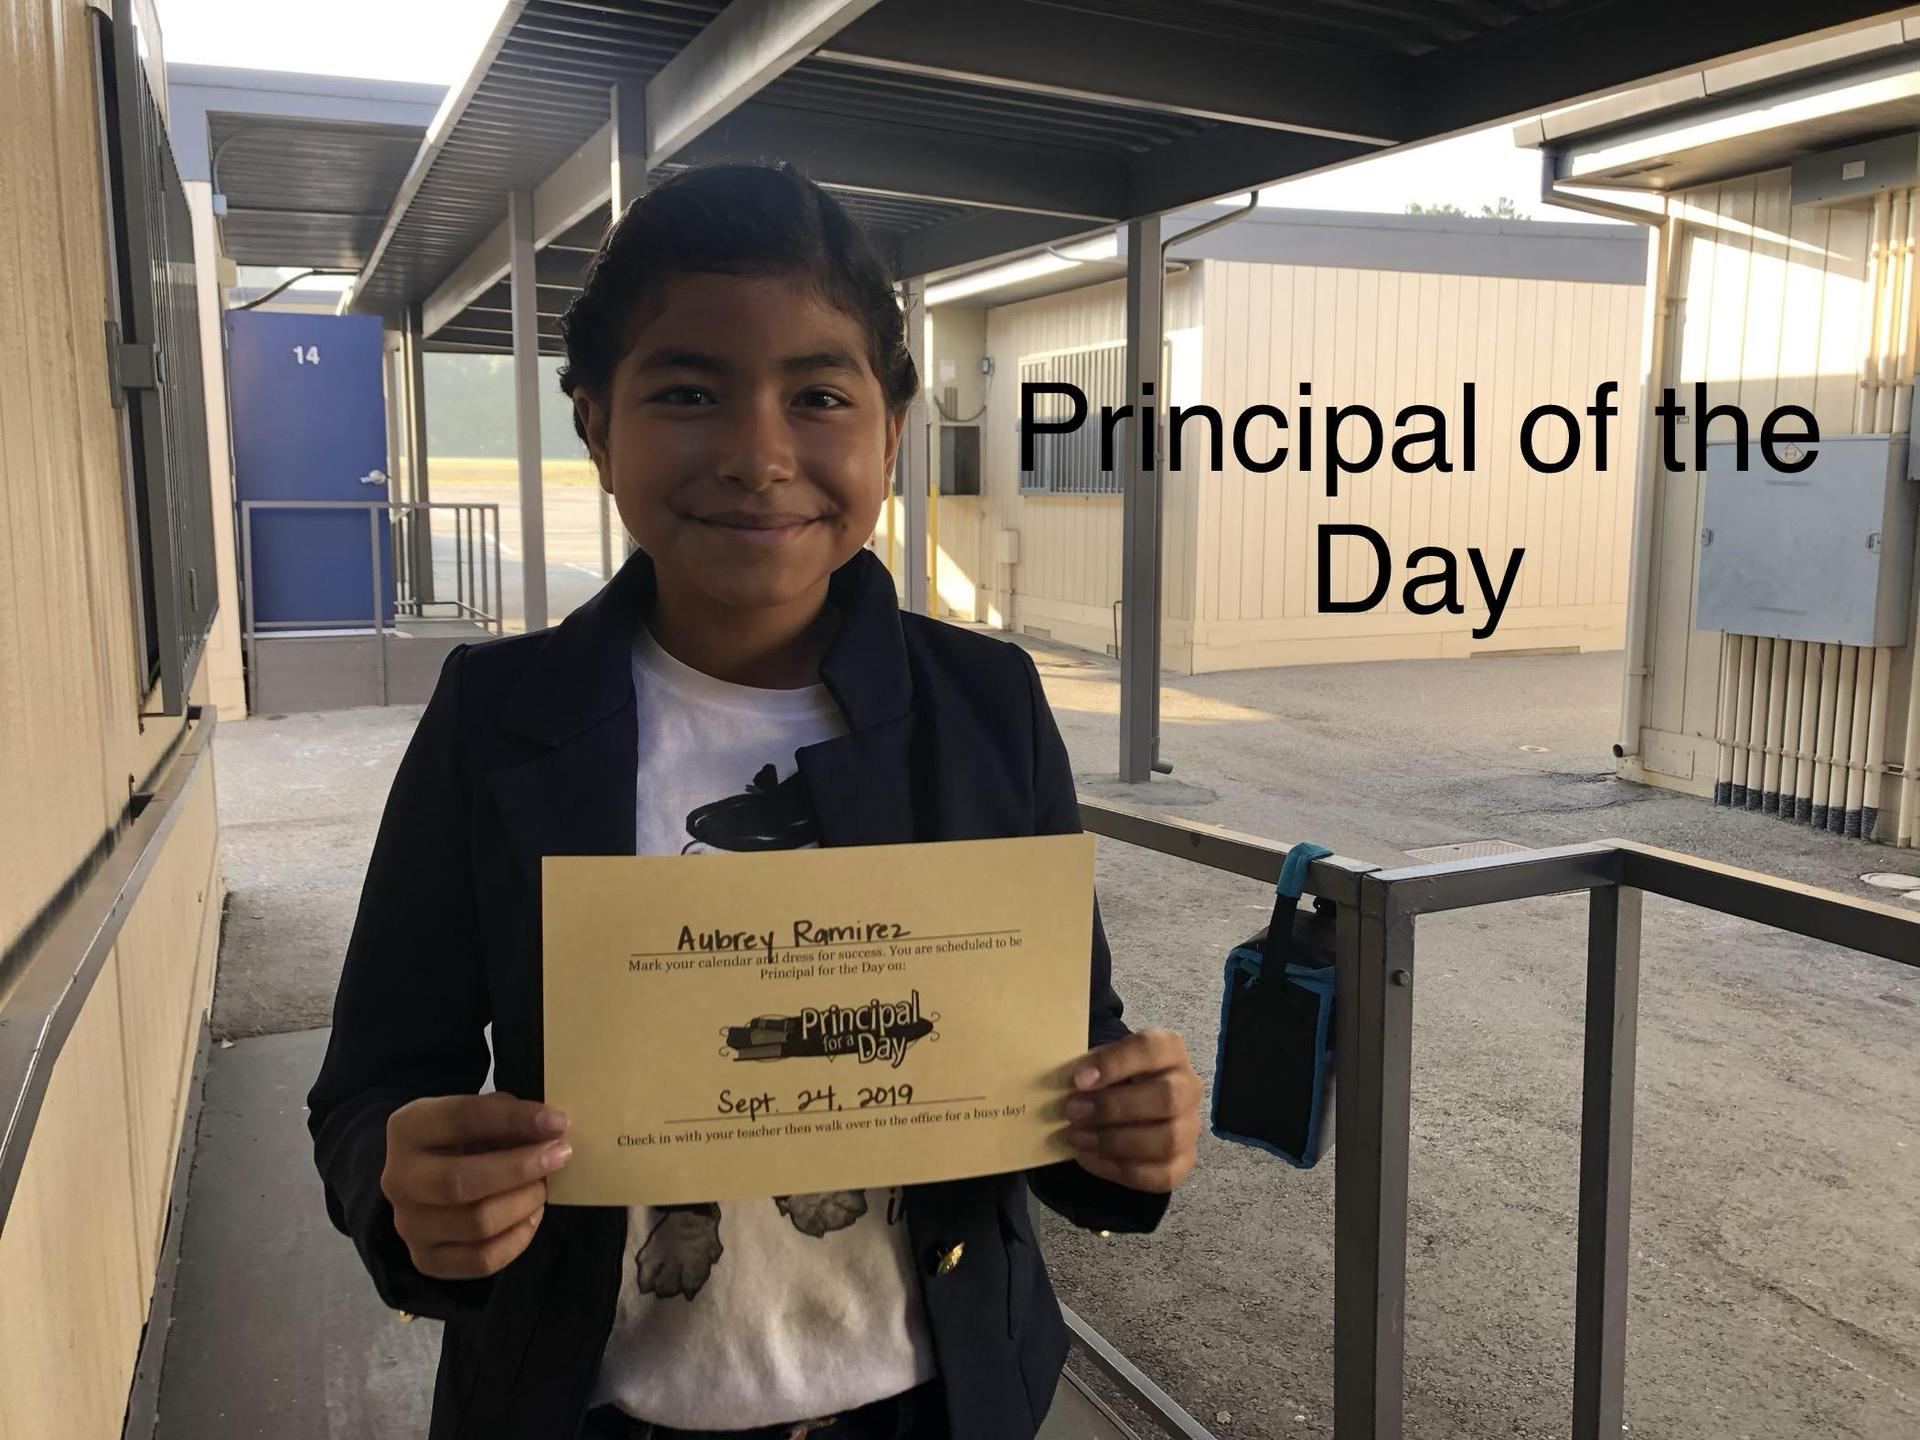 Principal of the Day